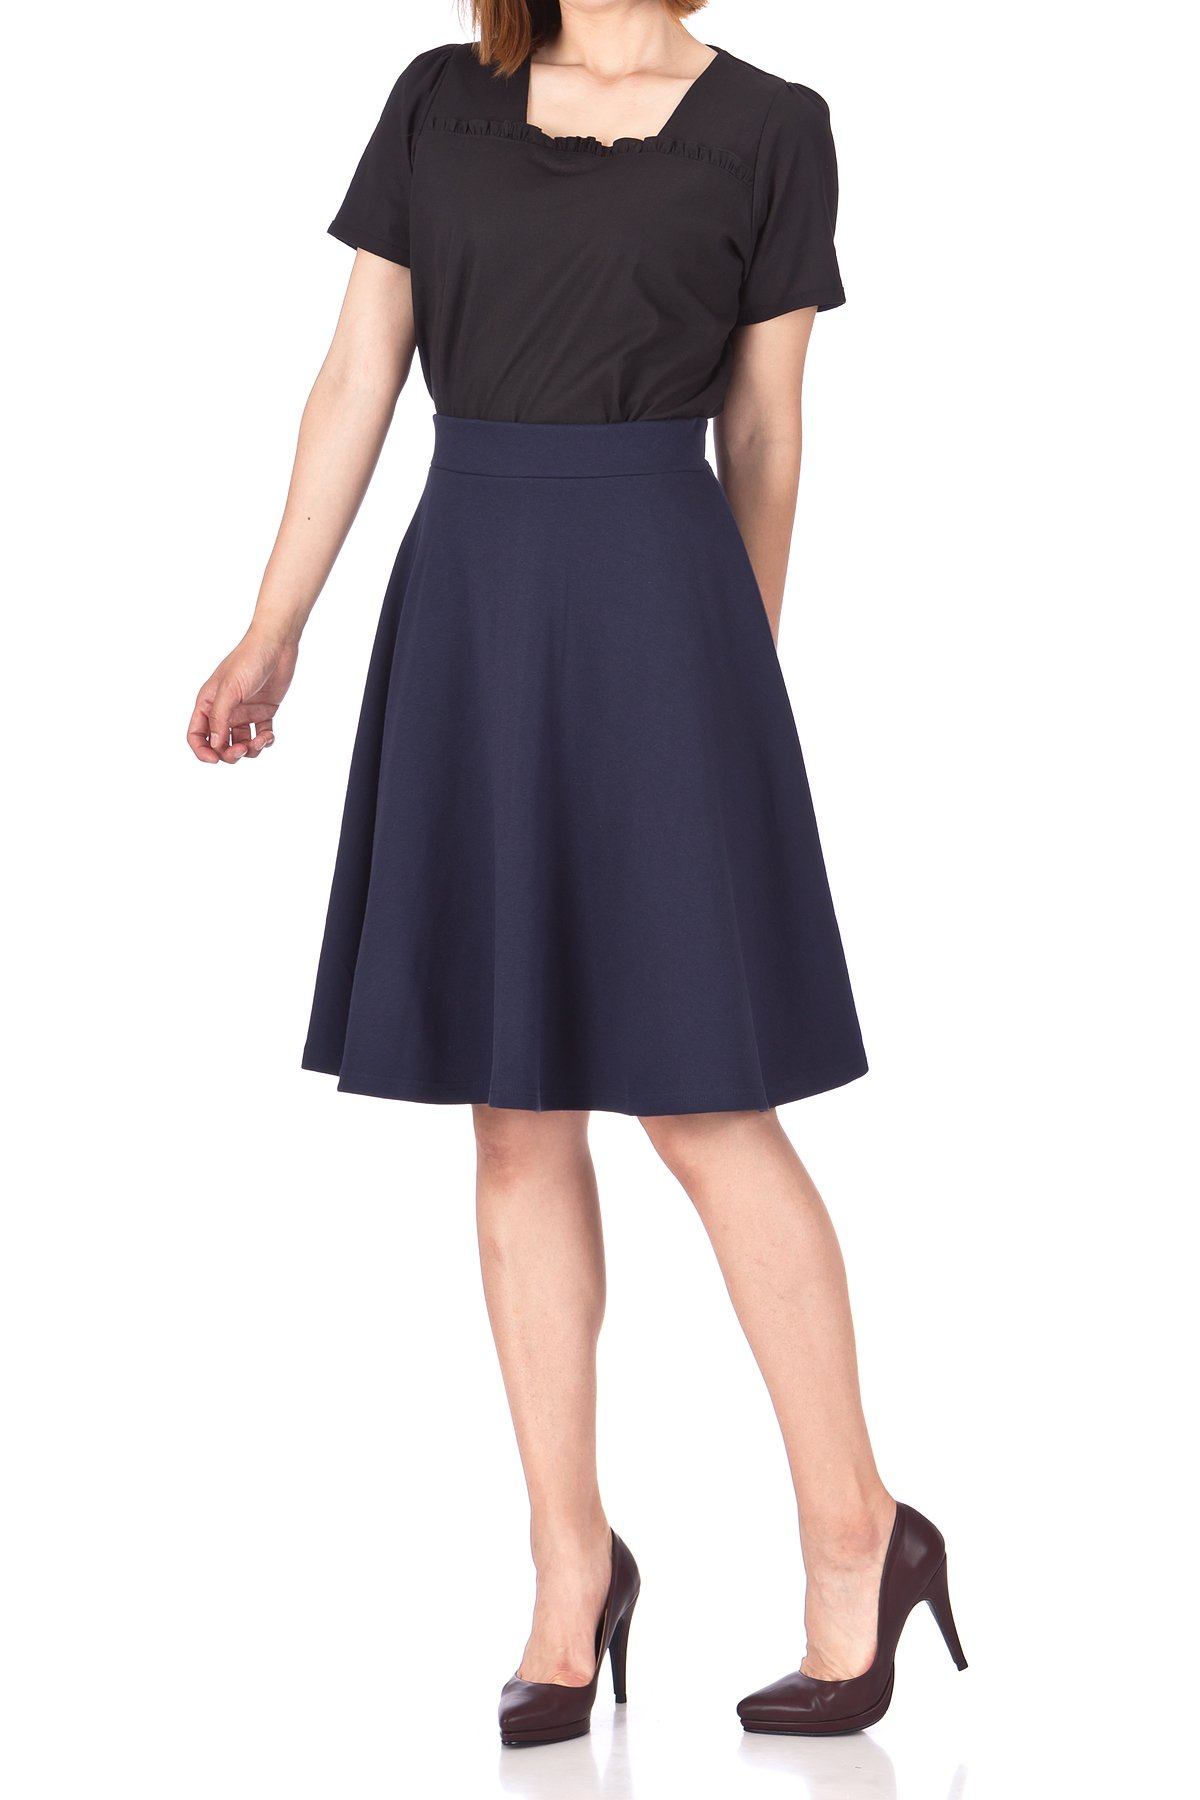 Comfy and Lovely Cotton Blend Versatile Casual Office High Waist A line Full Flared Swing Circle Skater Knee Length Skirt Navy 03